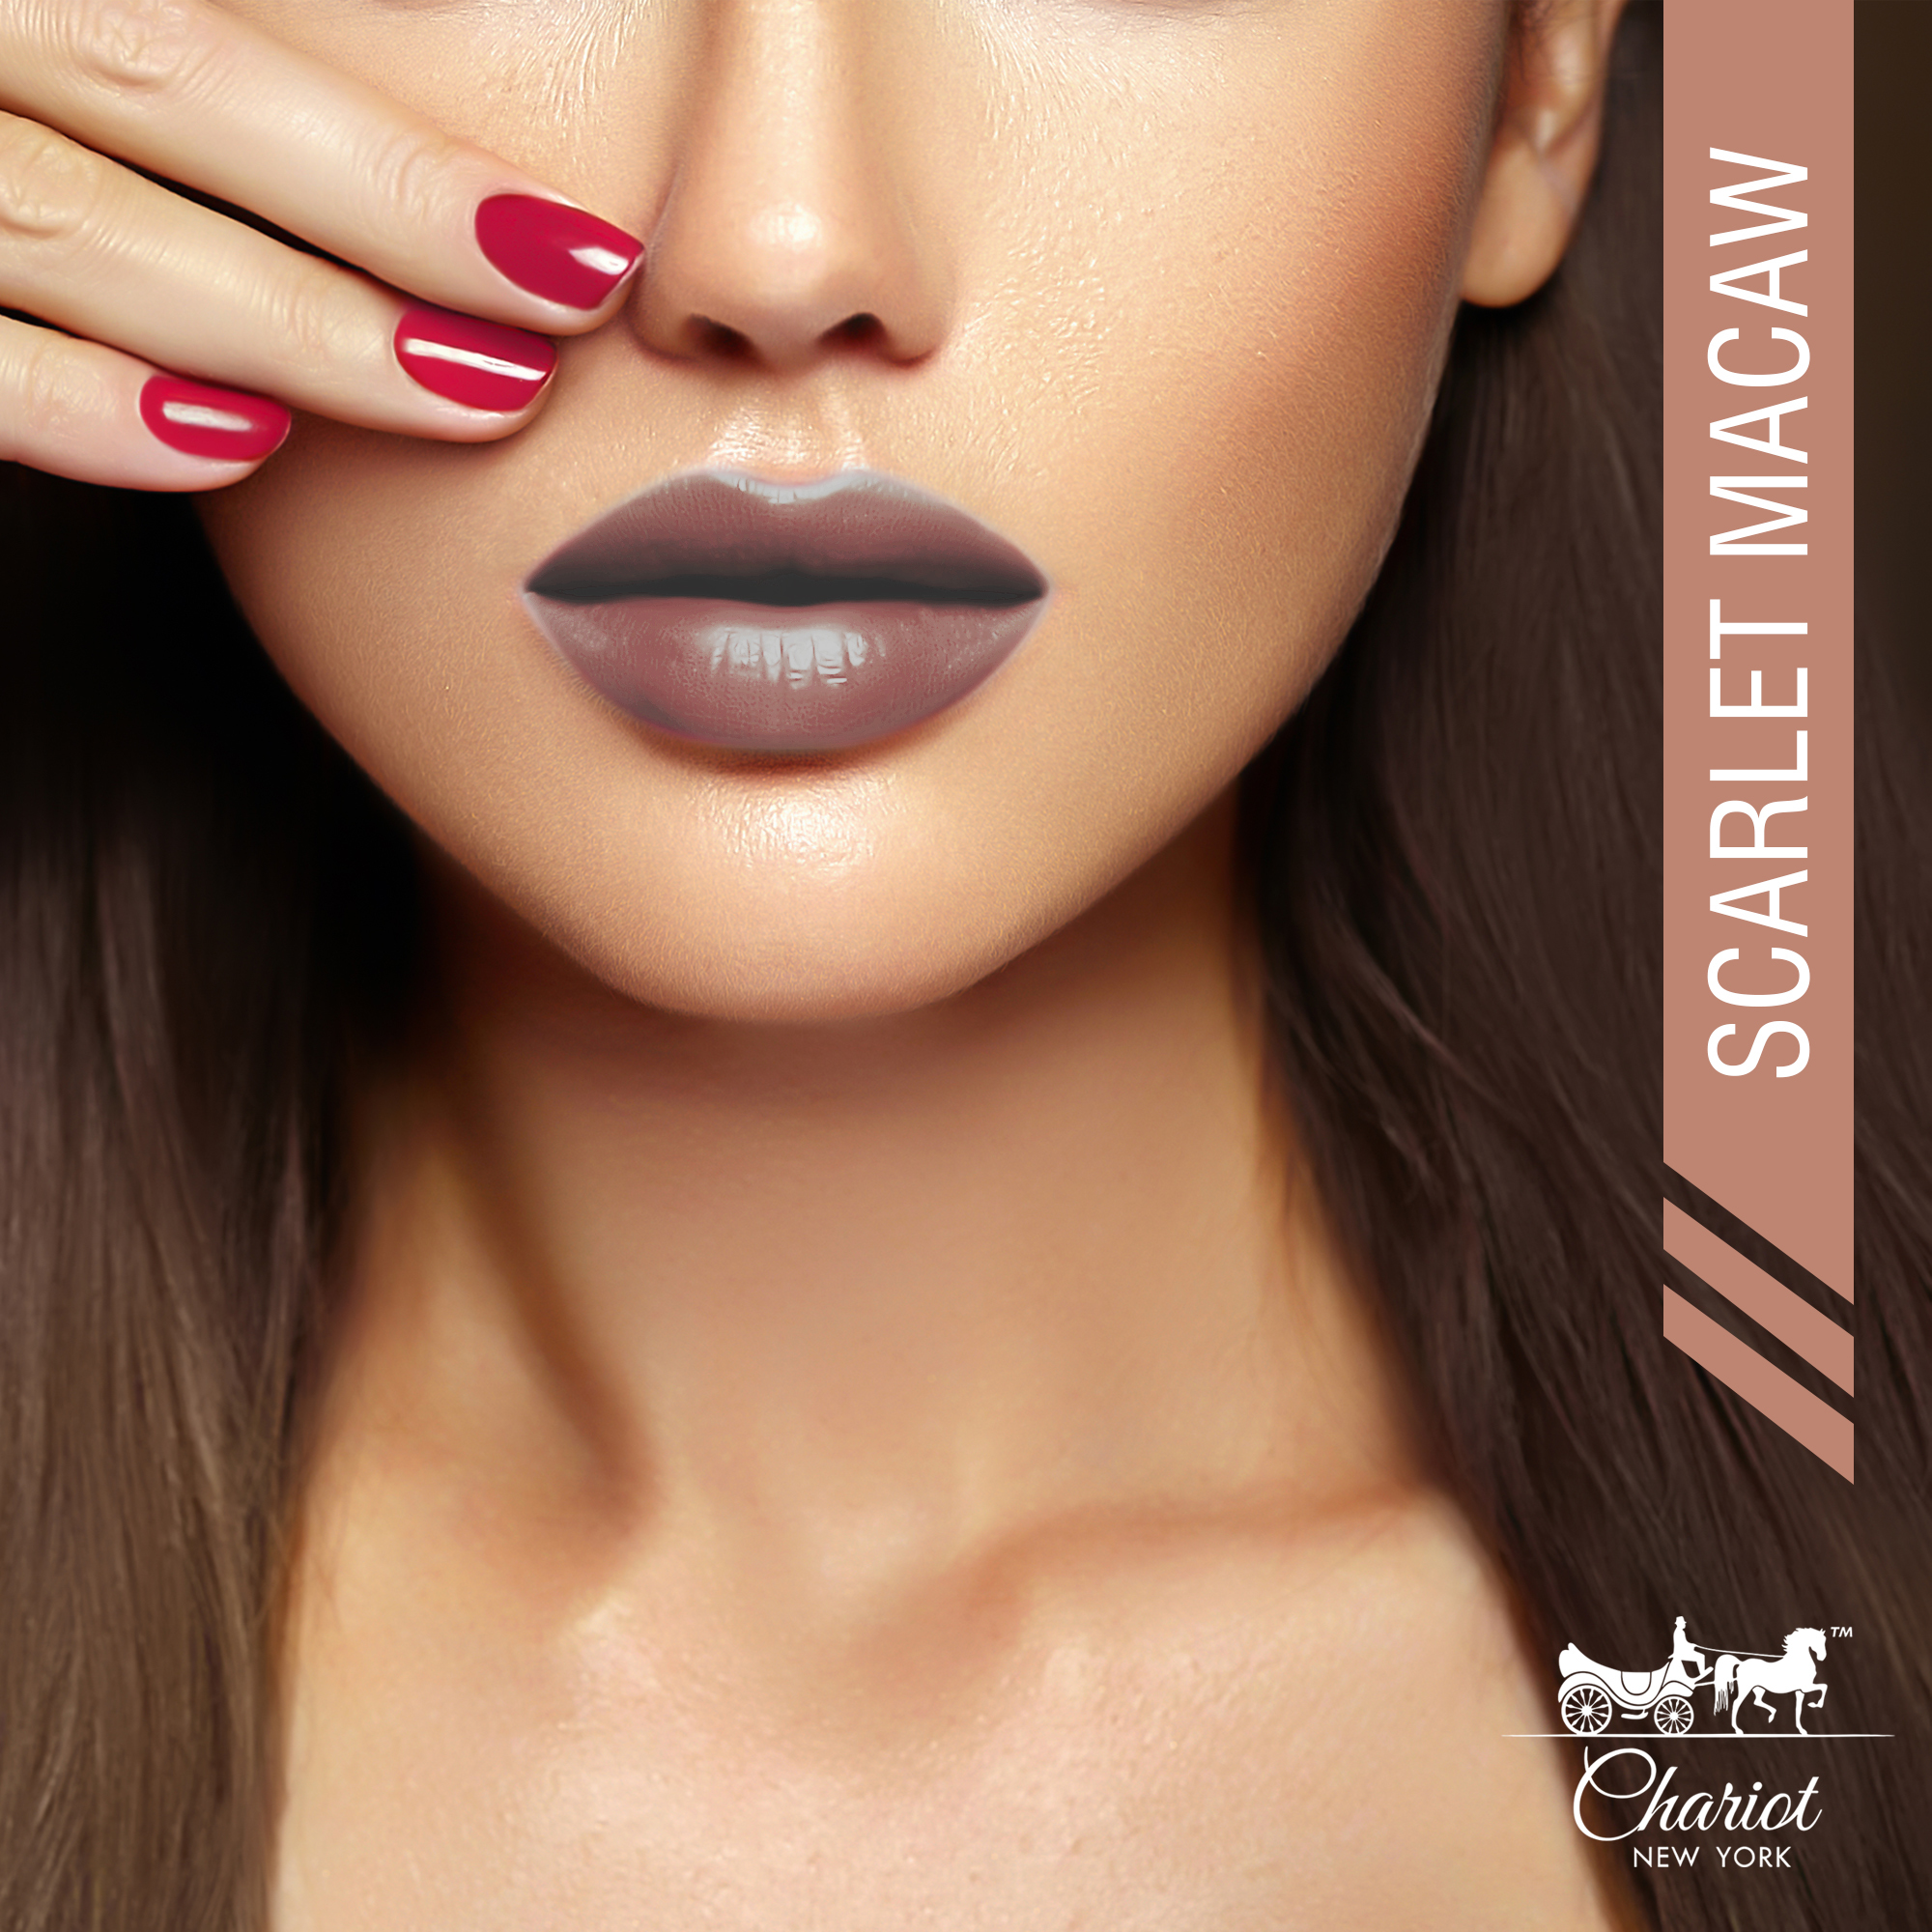 Chariot New York Scarlet Macaw Lipstick (Nude)